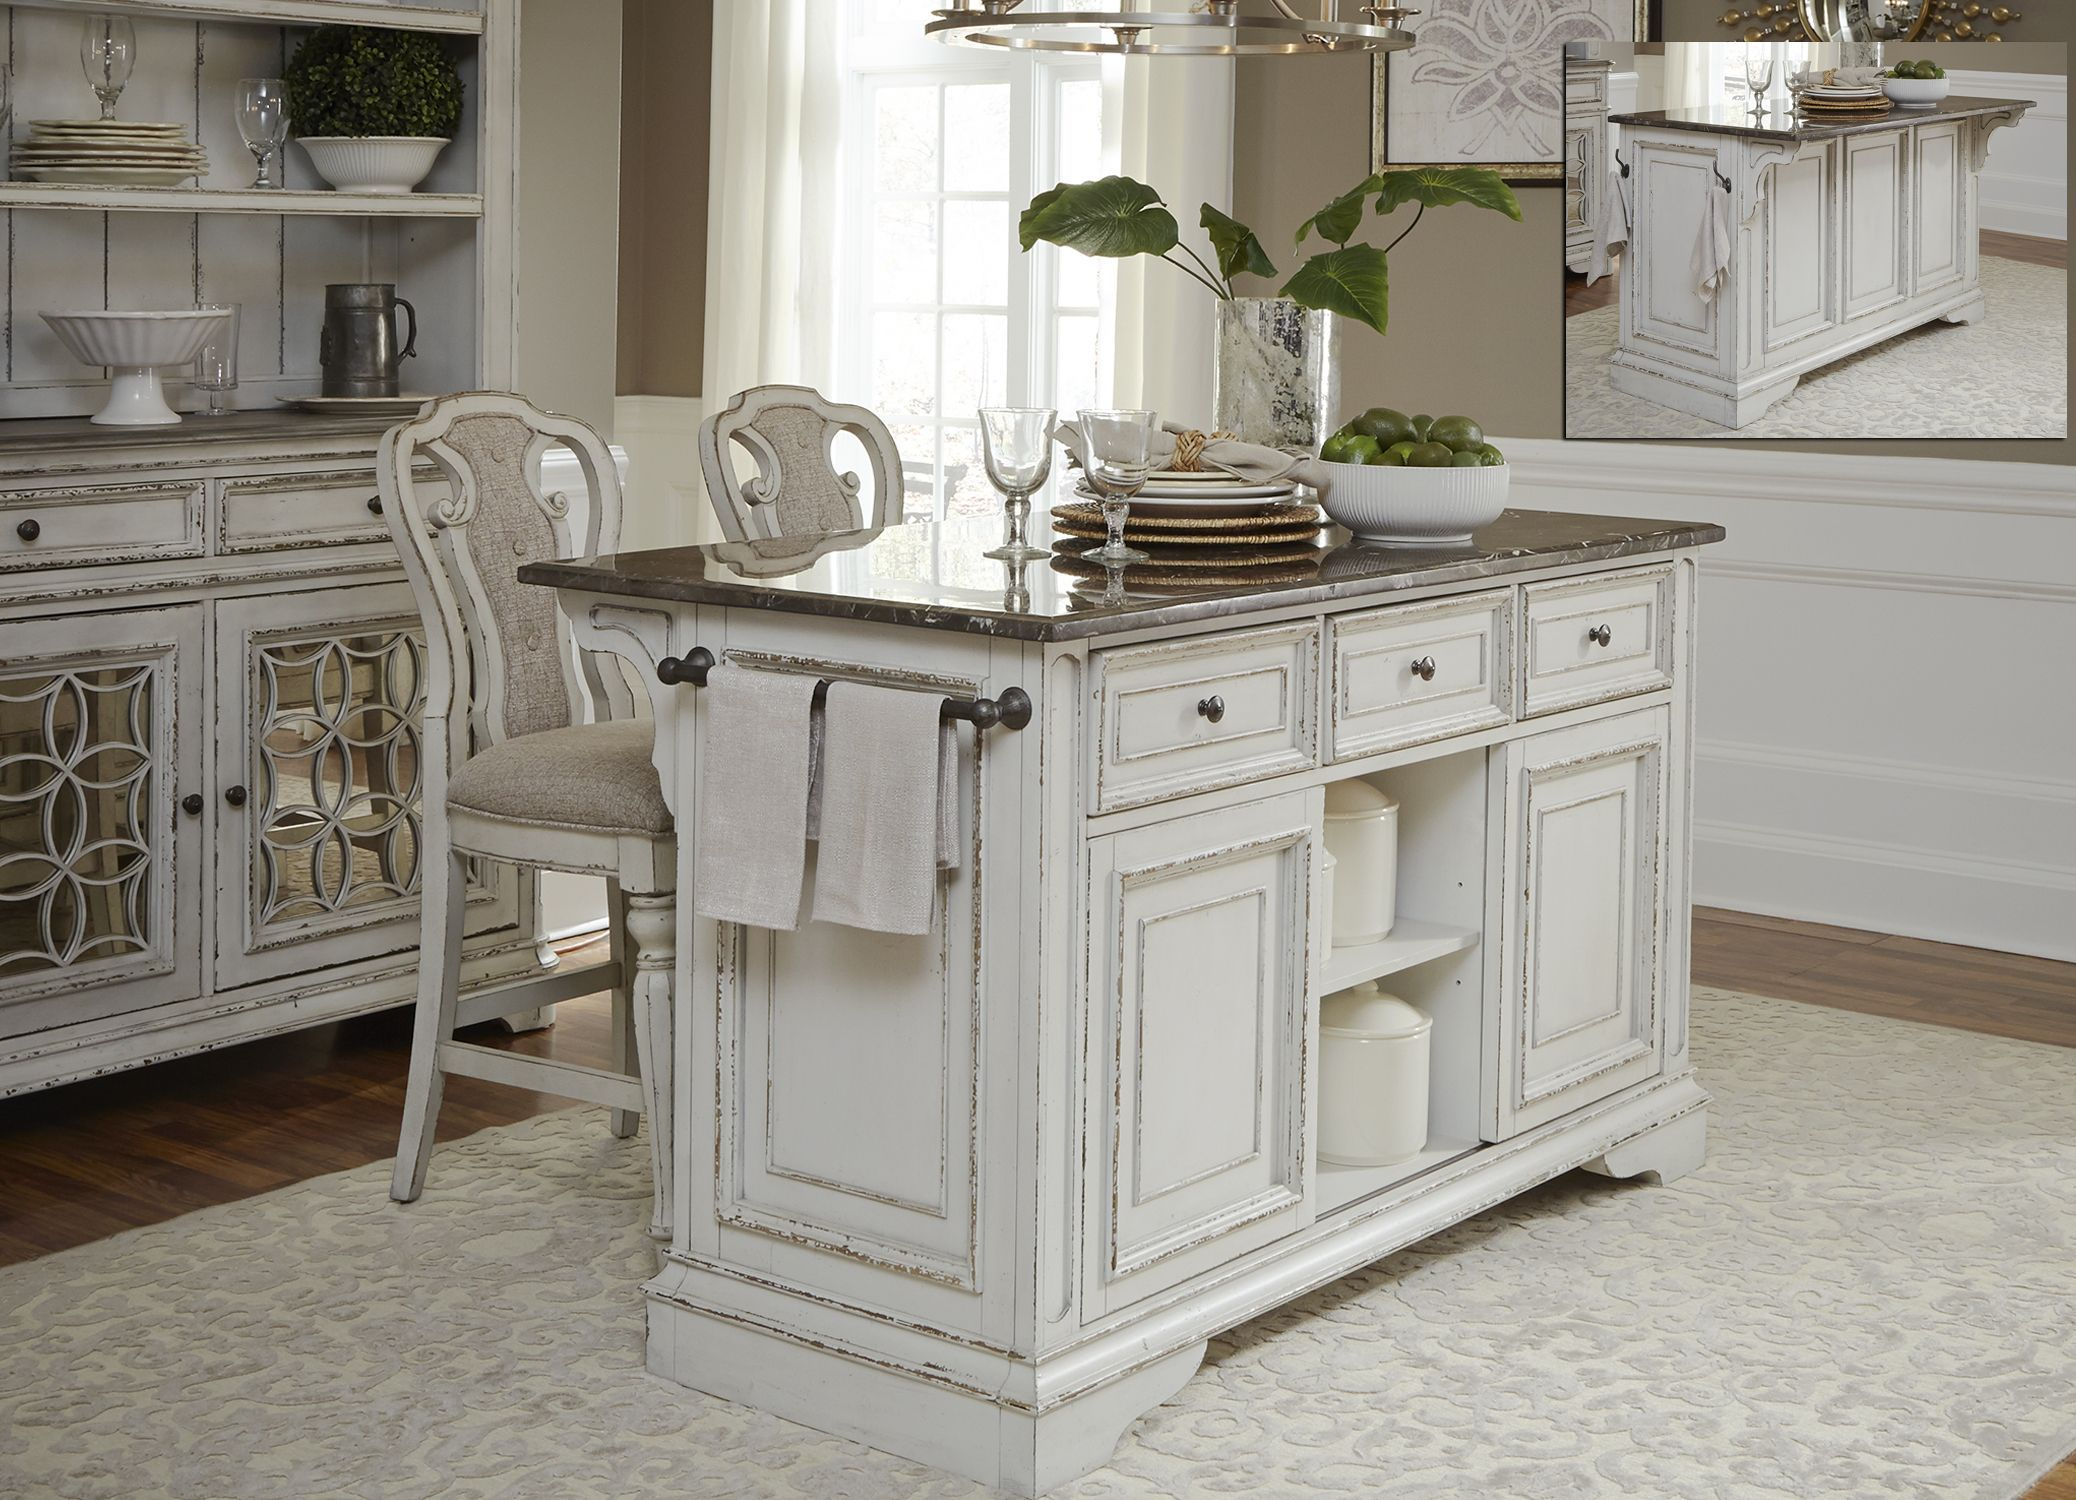 #Kitchen Idea of the Day: Antique White Kitchen Cabinets ...